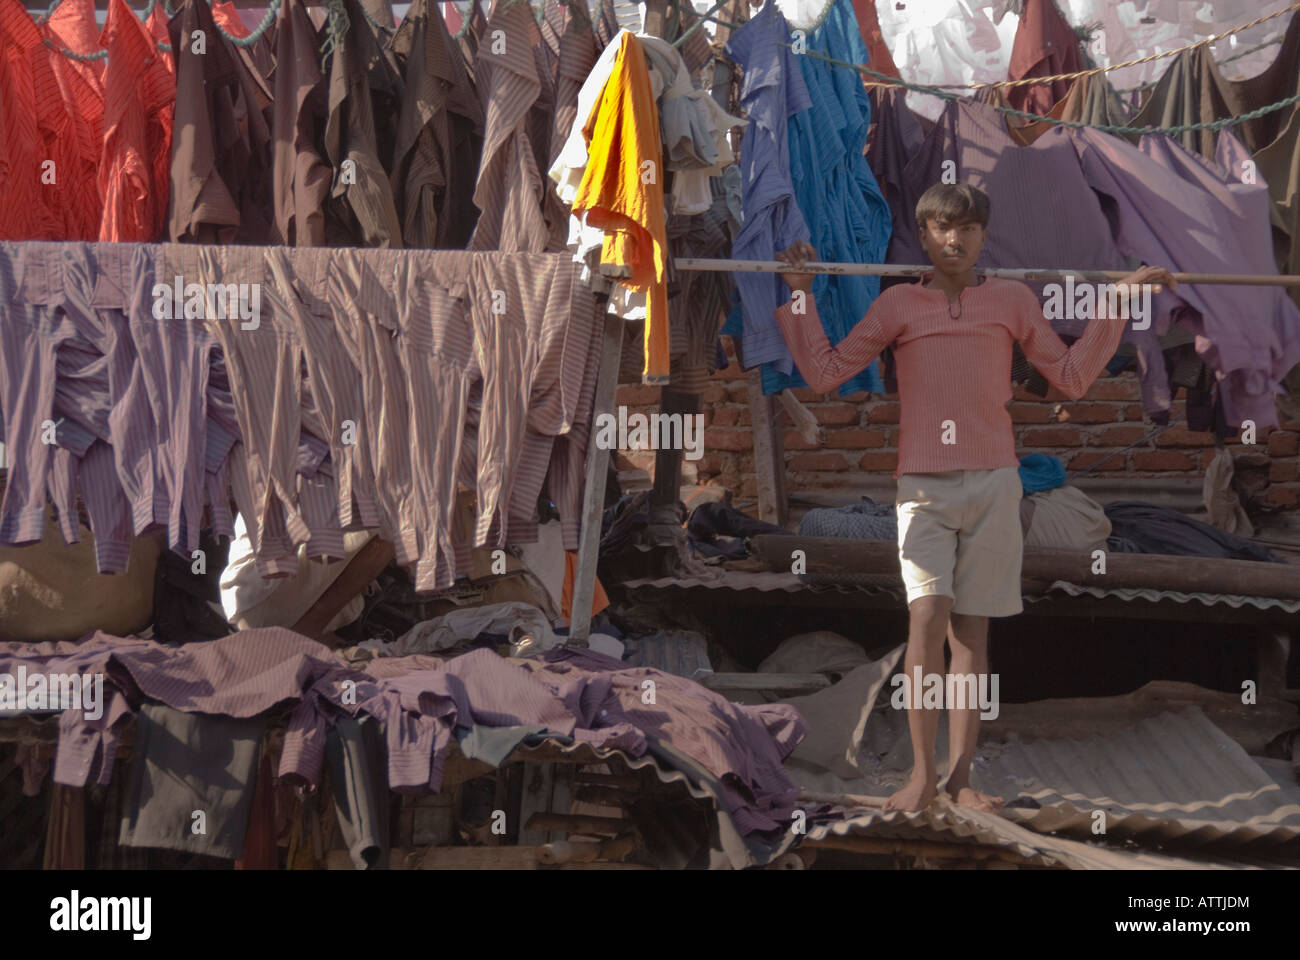 Hanging the shirts out to dry in the outdoor laundry of Mumbai, India. - Stock Image